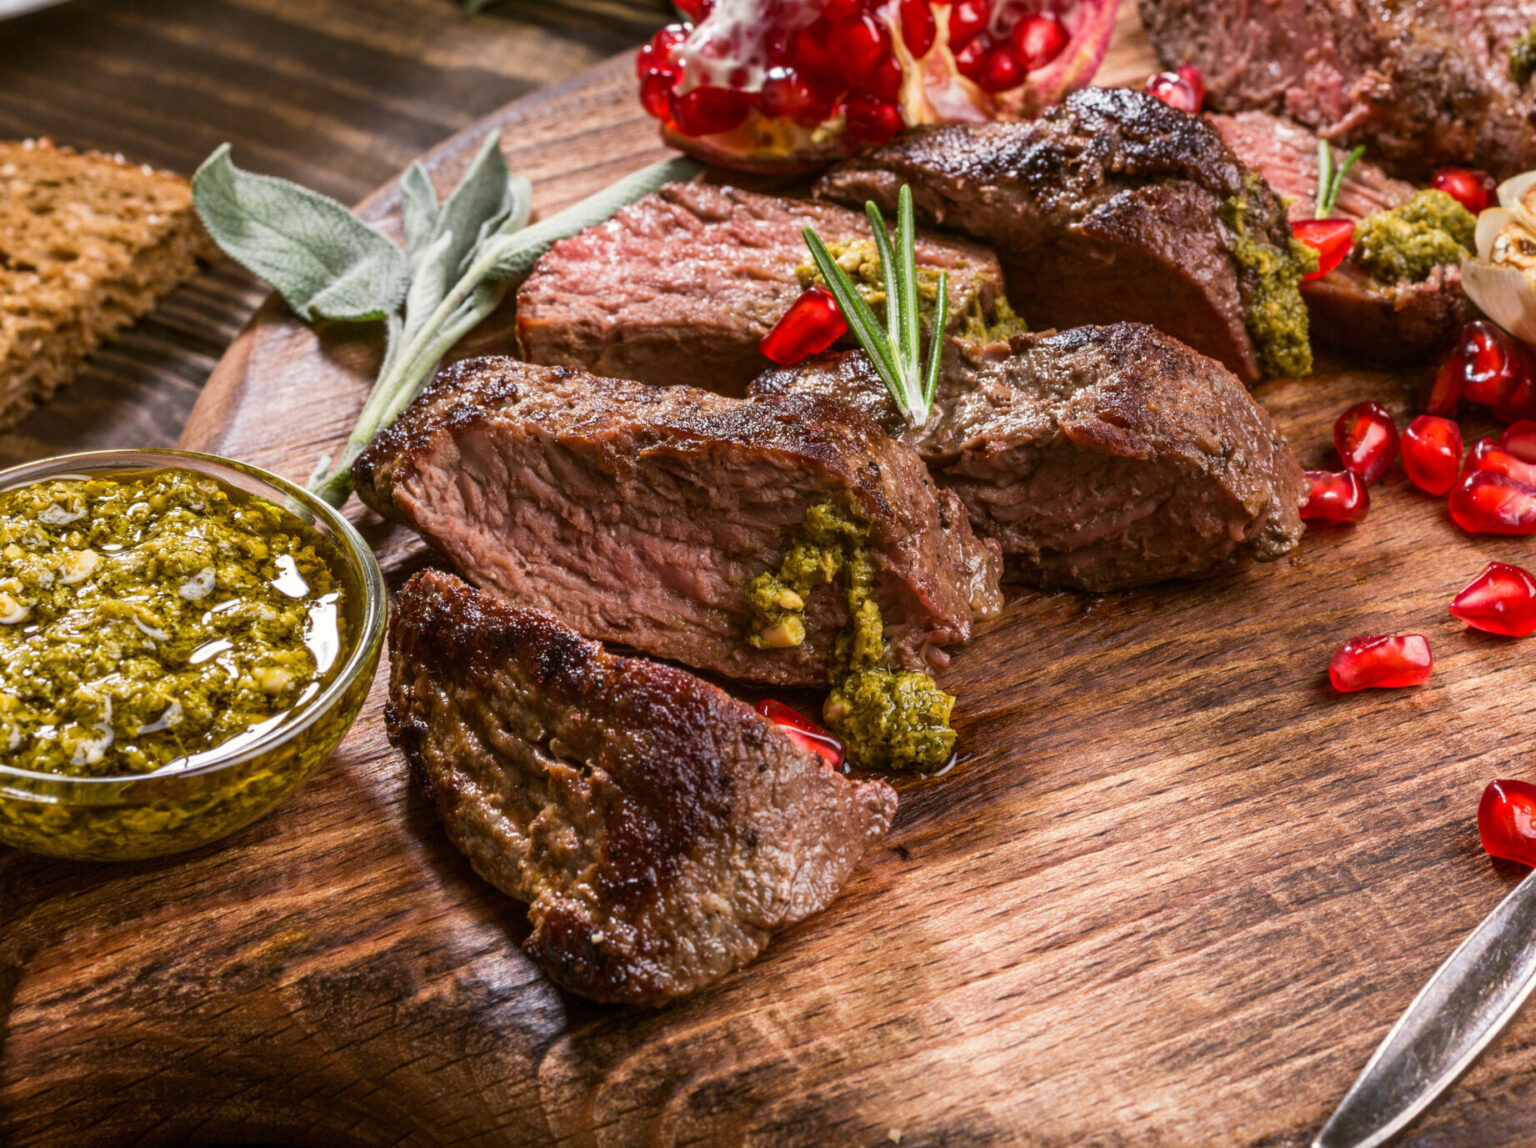 Kangaroo meat steak with green pesto and pomegranate on wooden cutting board. Helthy holiday food concept. Selective focus.